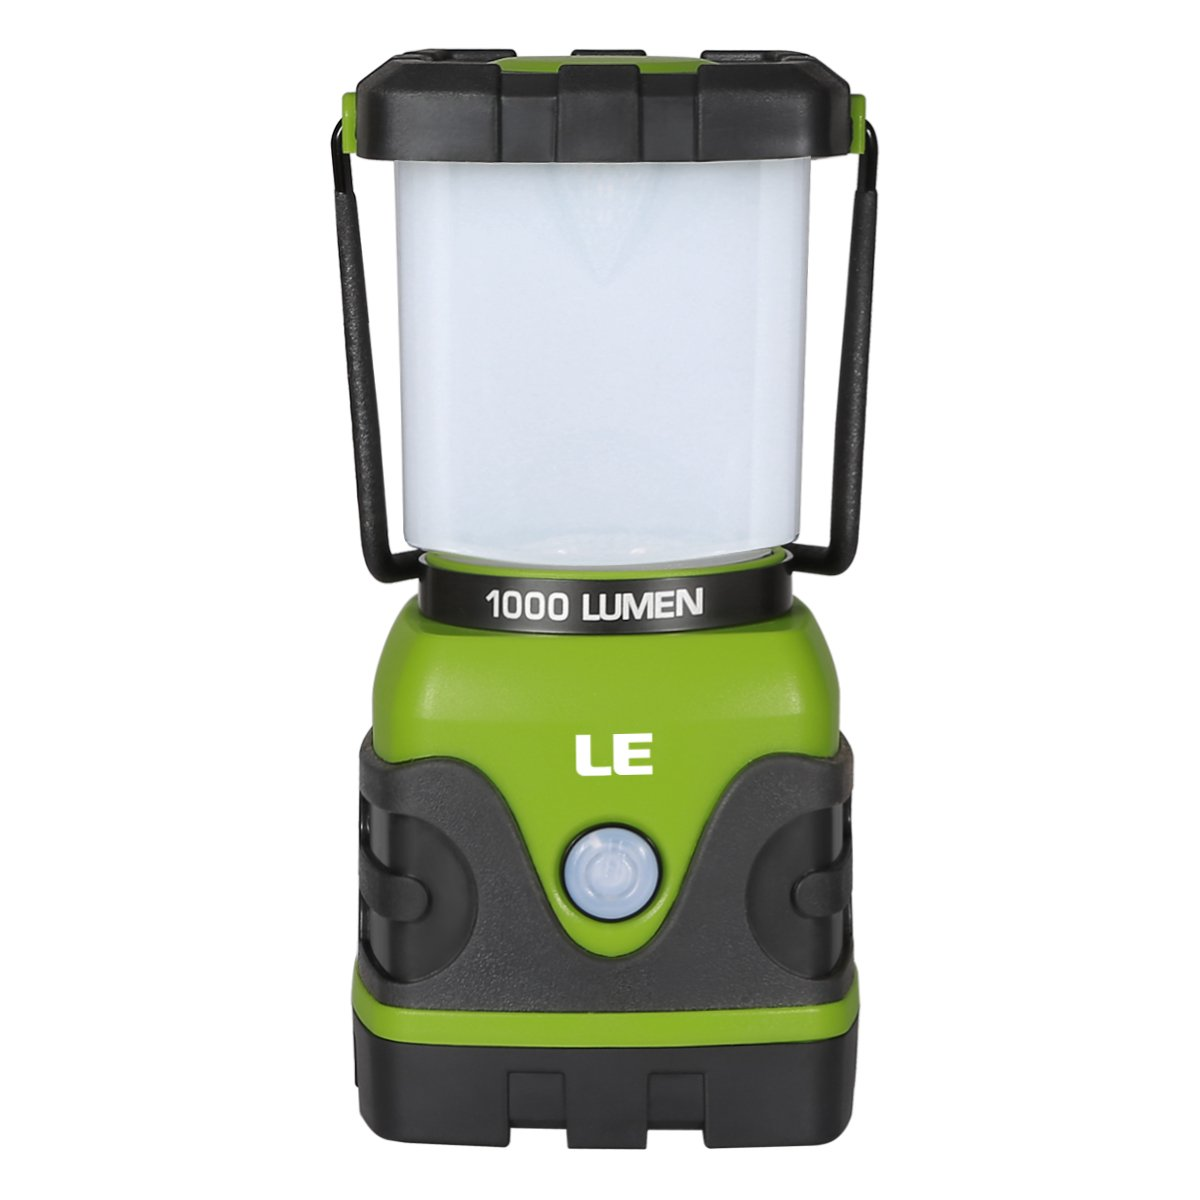 3. LE Portable LED Camping Lantern, 1000lm, Dimmable, 4 Lighting Modes